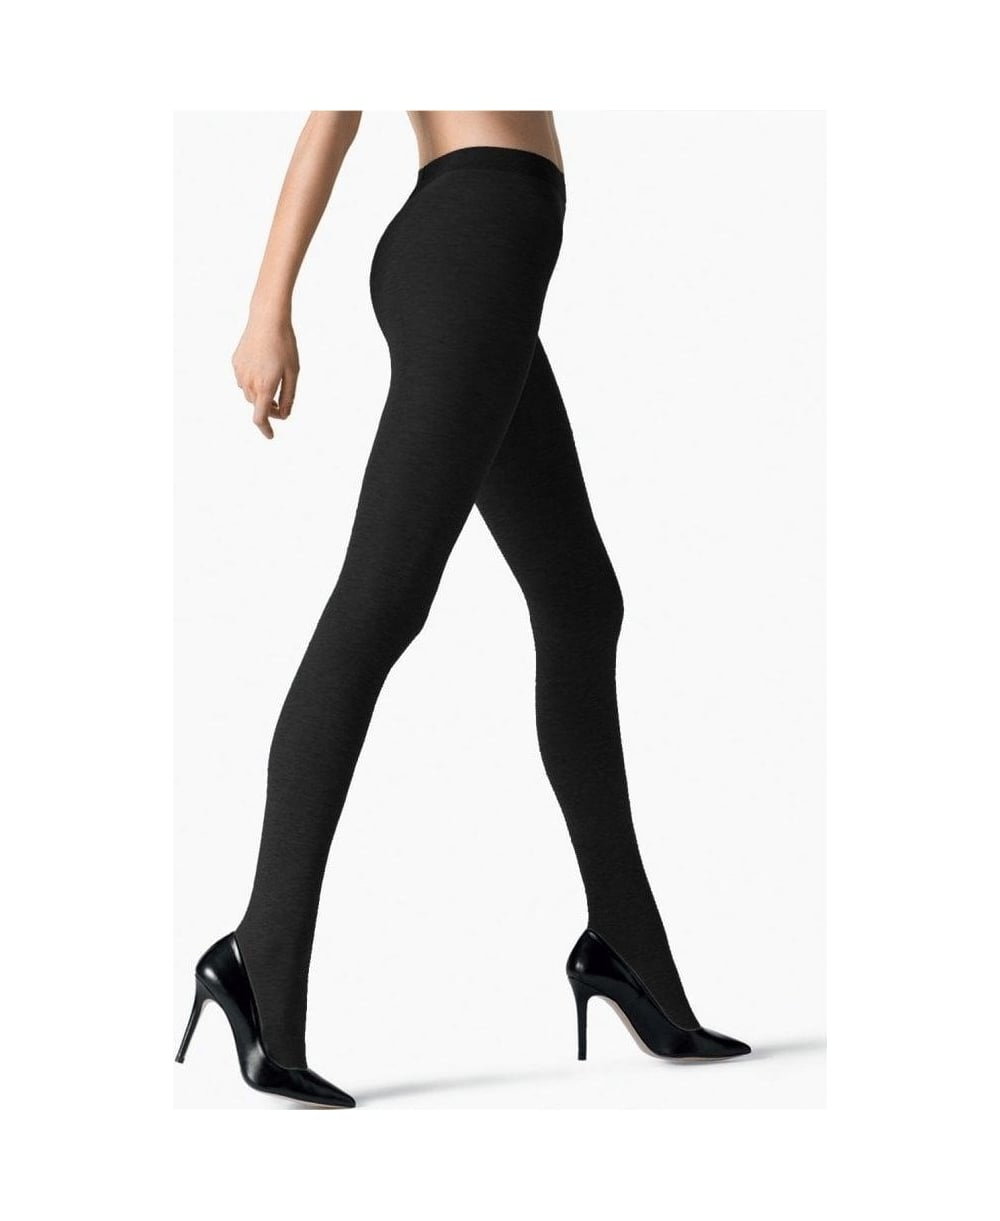 1940317a43b Fogal Sensuelle Cotton   Cashmere Tights - Tights from luxury-legs ...